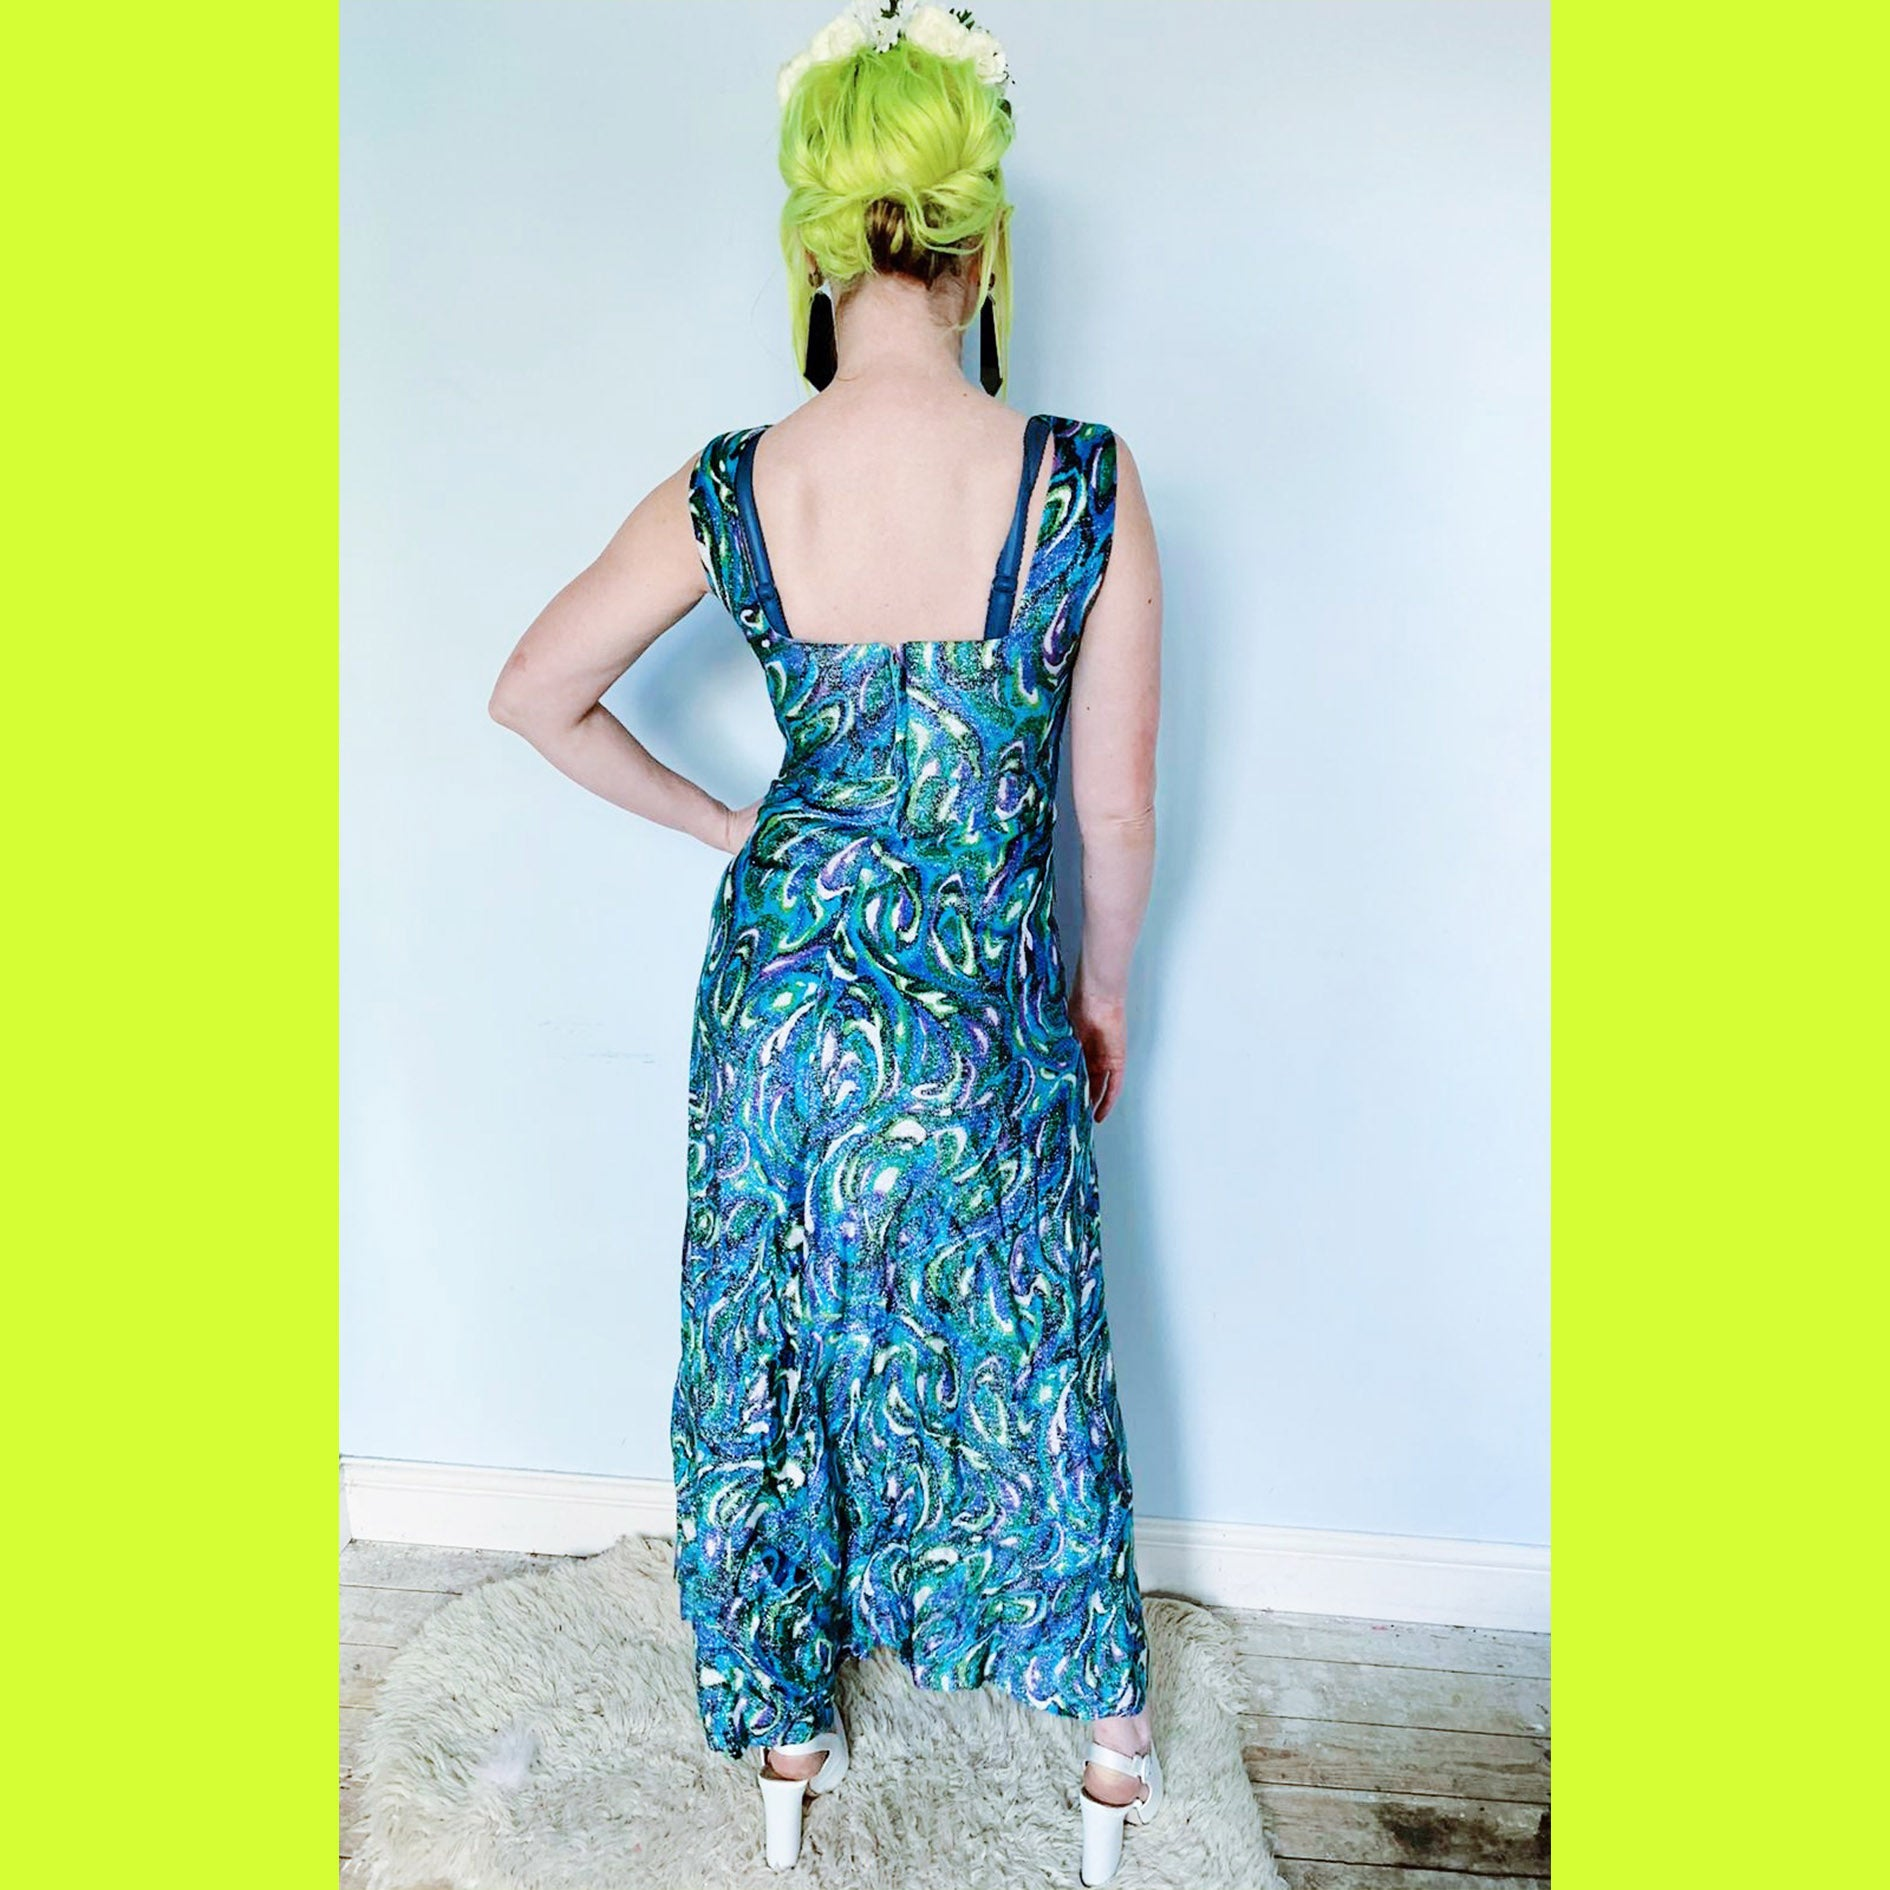 Vintage 60s / 70s metallic print psychedelic maxi dress